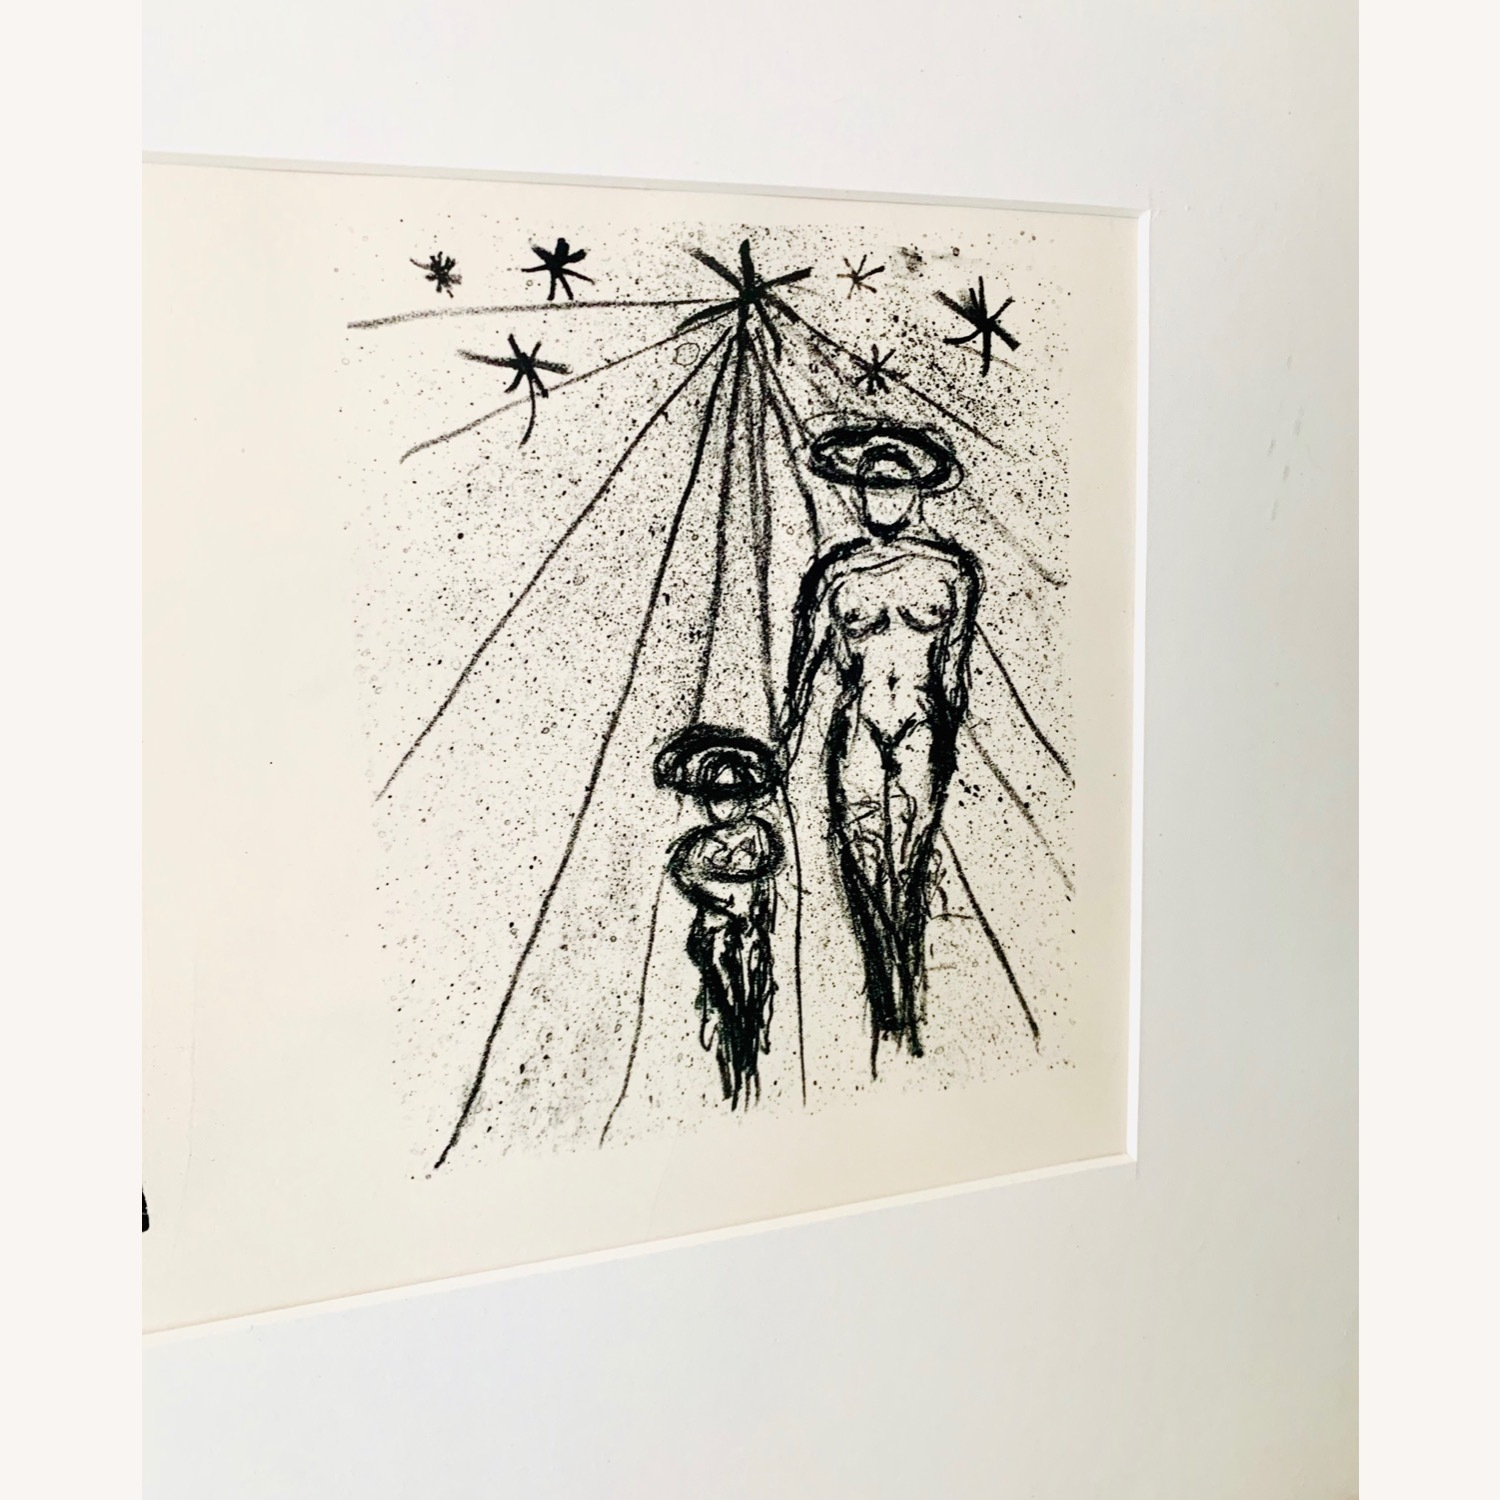 Vintage Triptych Abstract Drawings - image-3